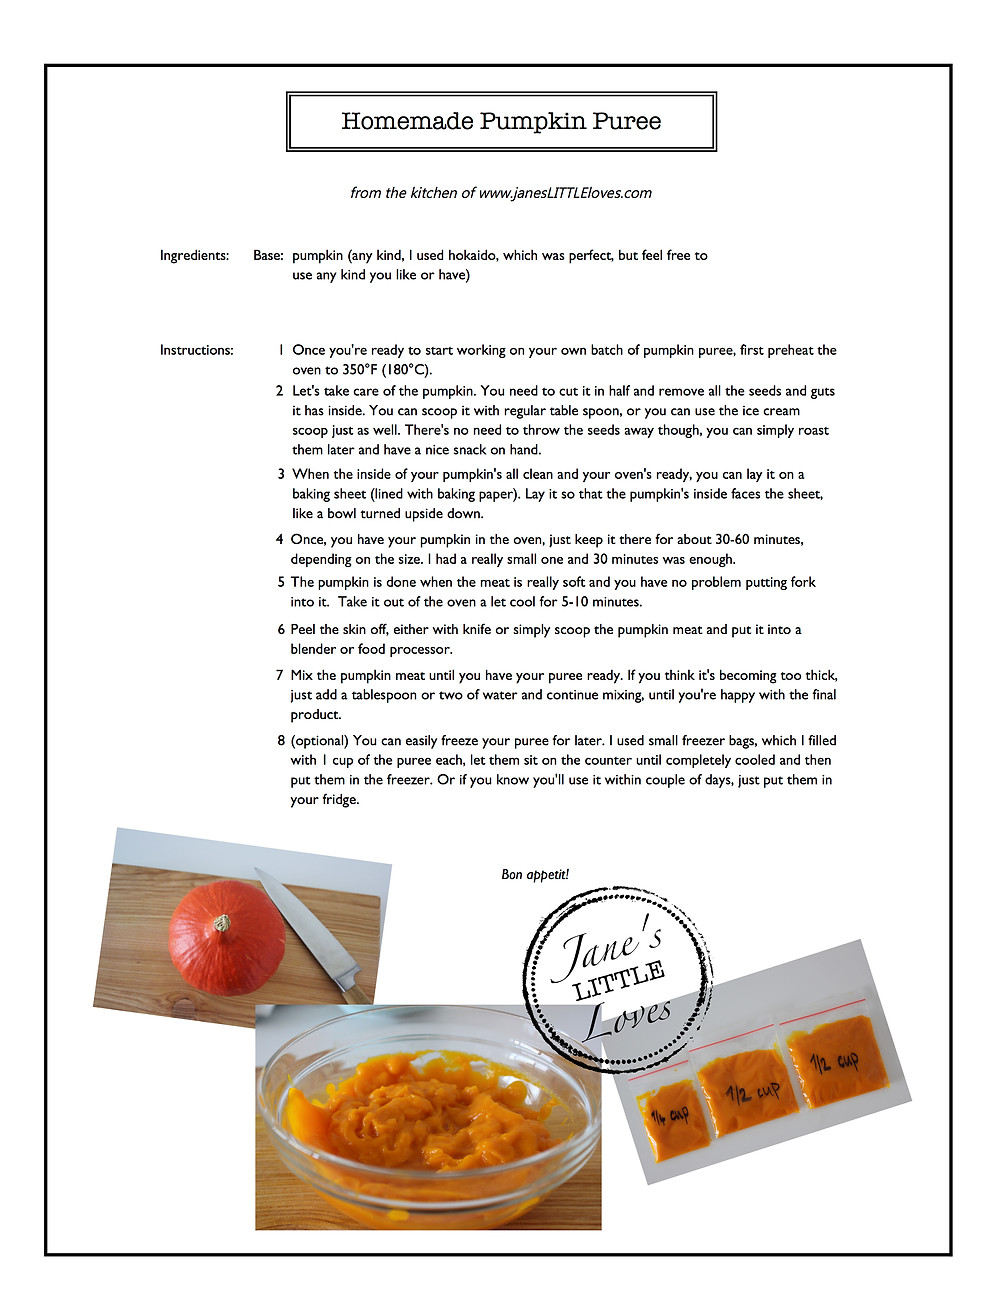 homemade pumpkin puree recipe card printable